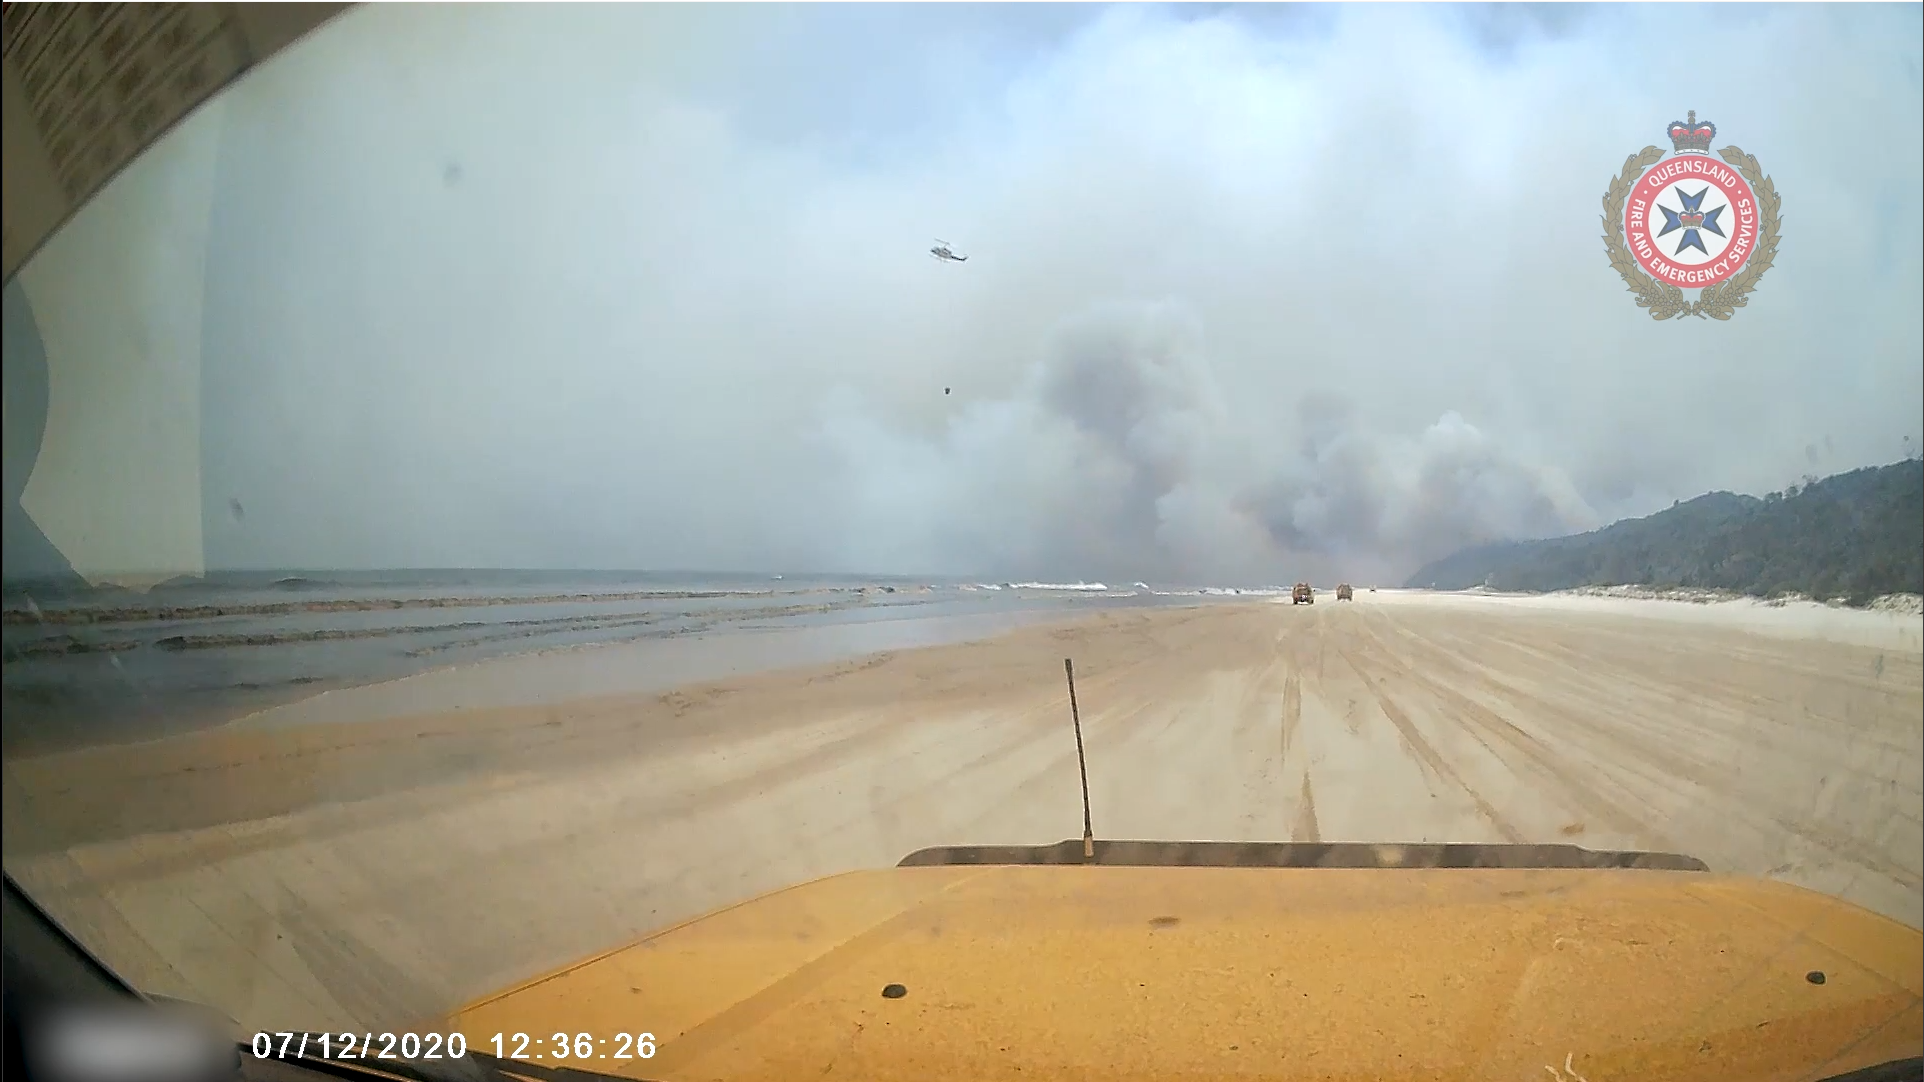 Dashcam vision from a Rural Fire Truck from 5/12-7/12 in the midst of firefighting operations on K'Gari.